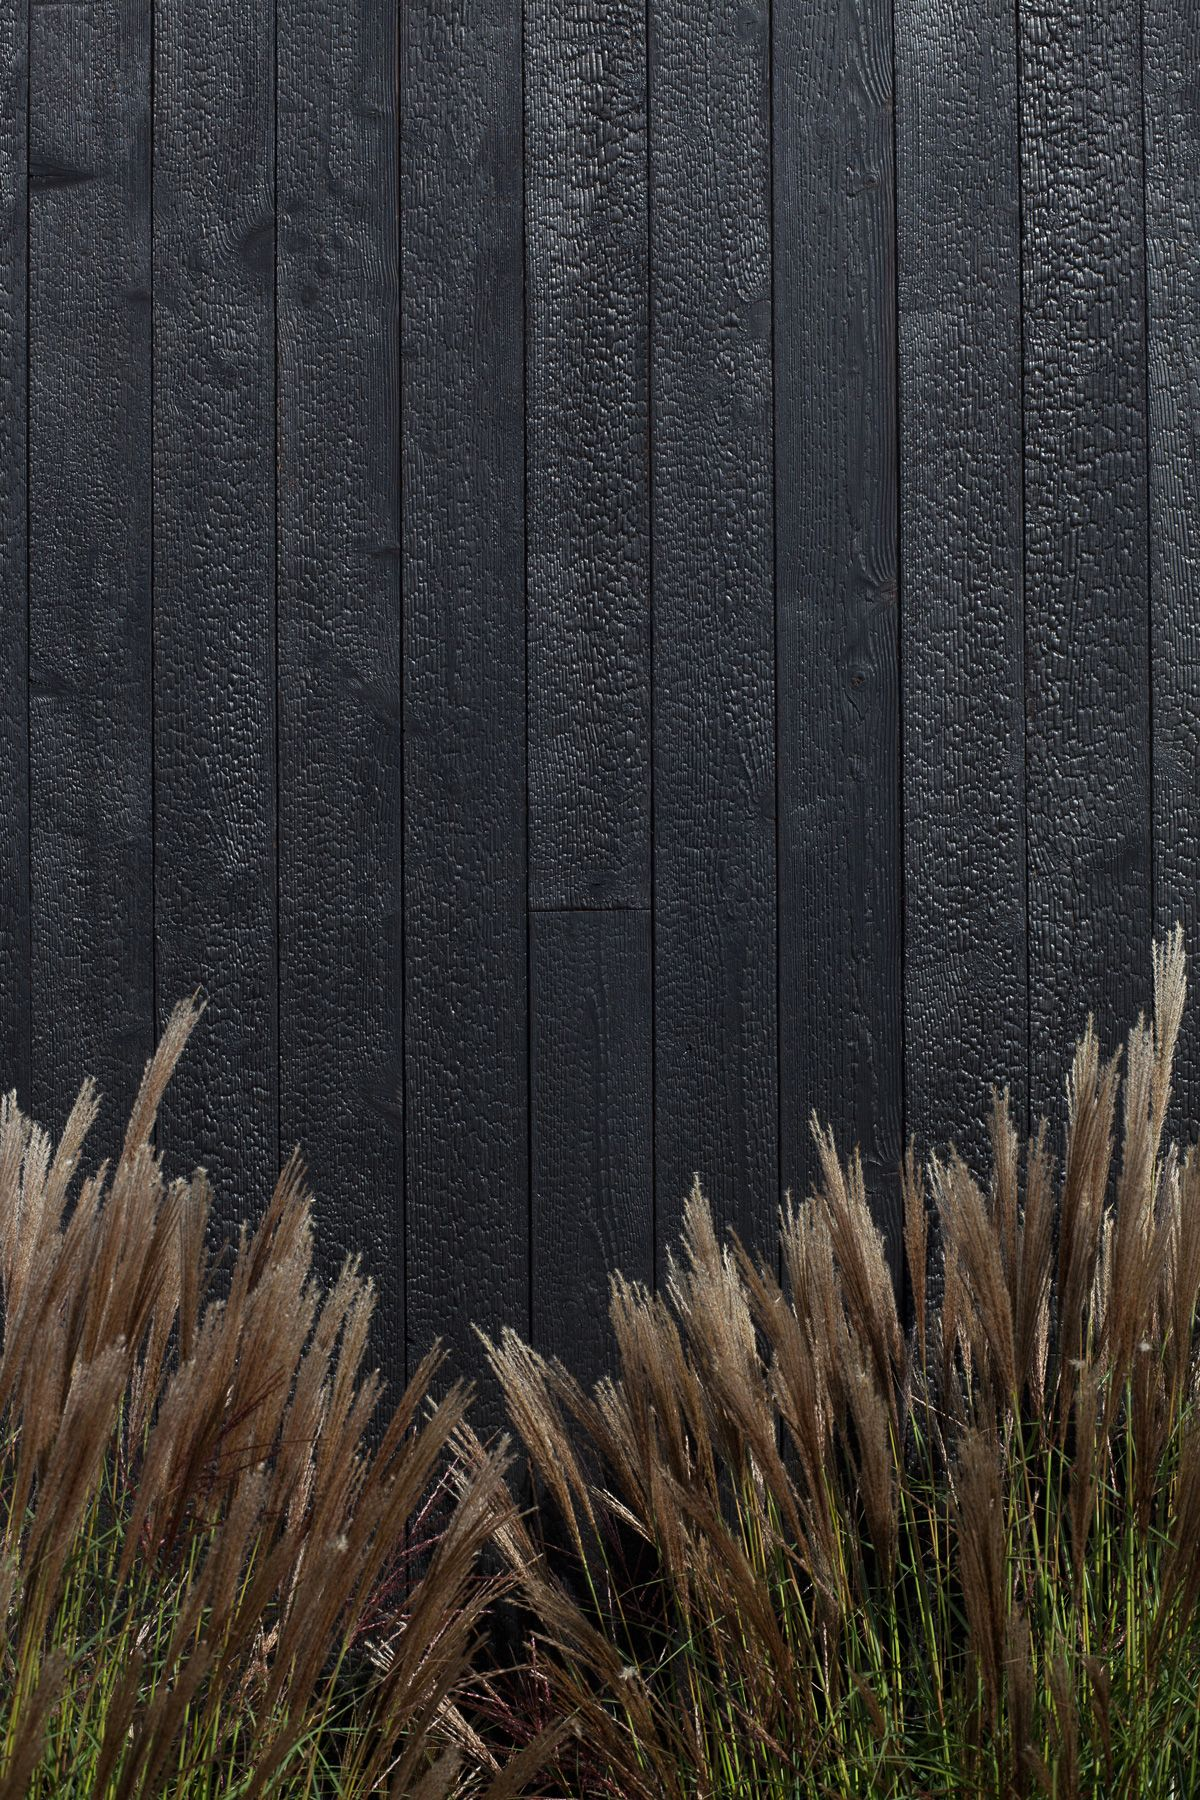 Charred Larch Wood Cladding 183 Russwood Timber A Place To